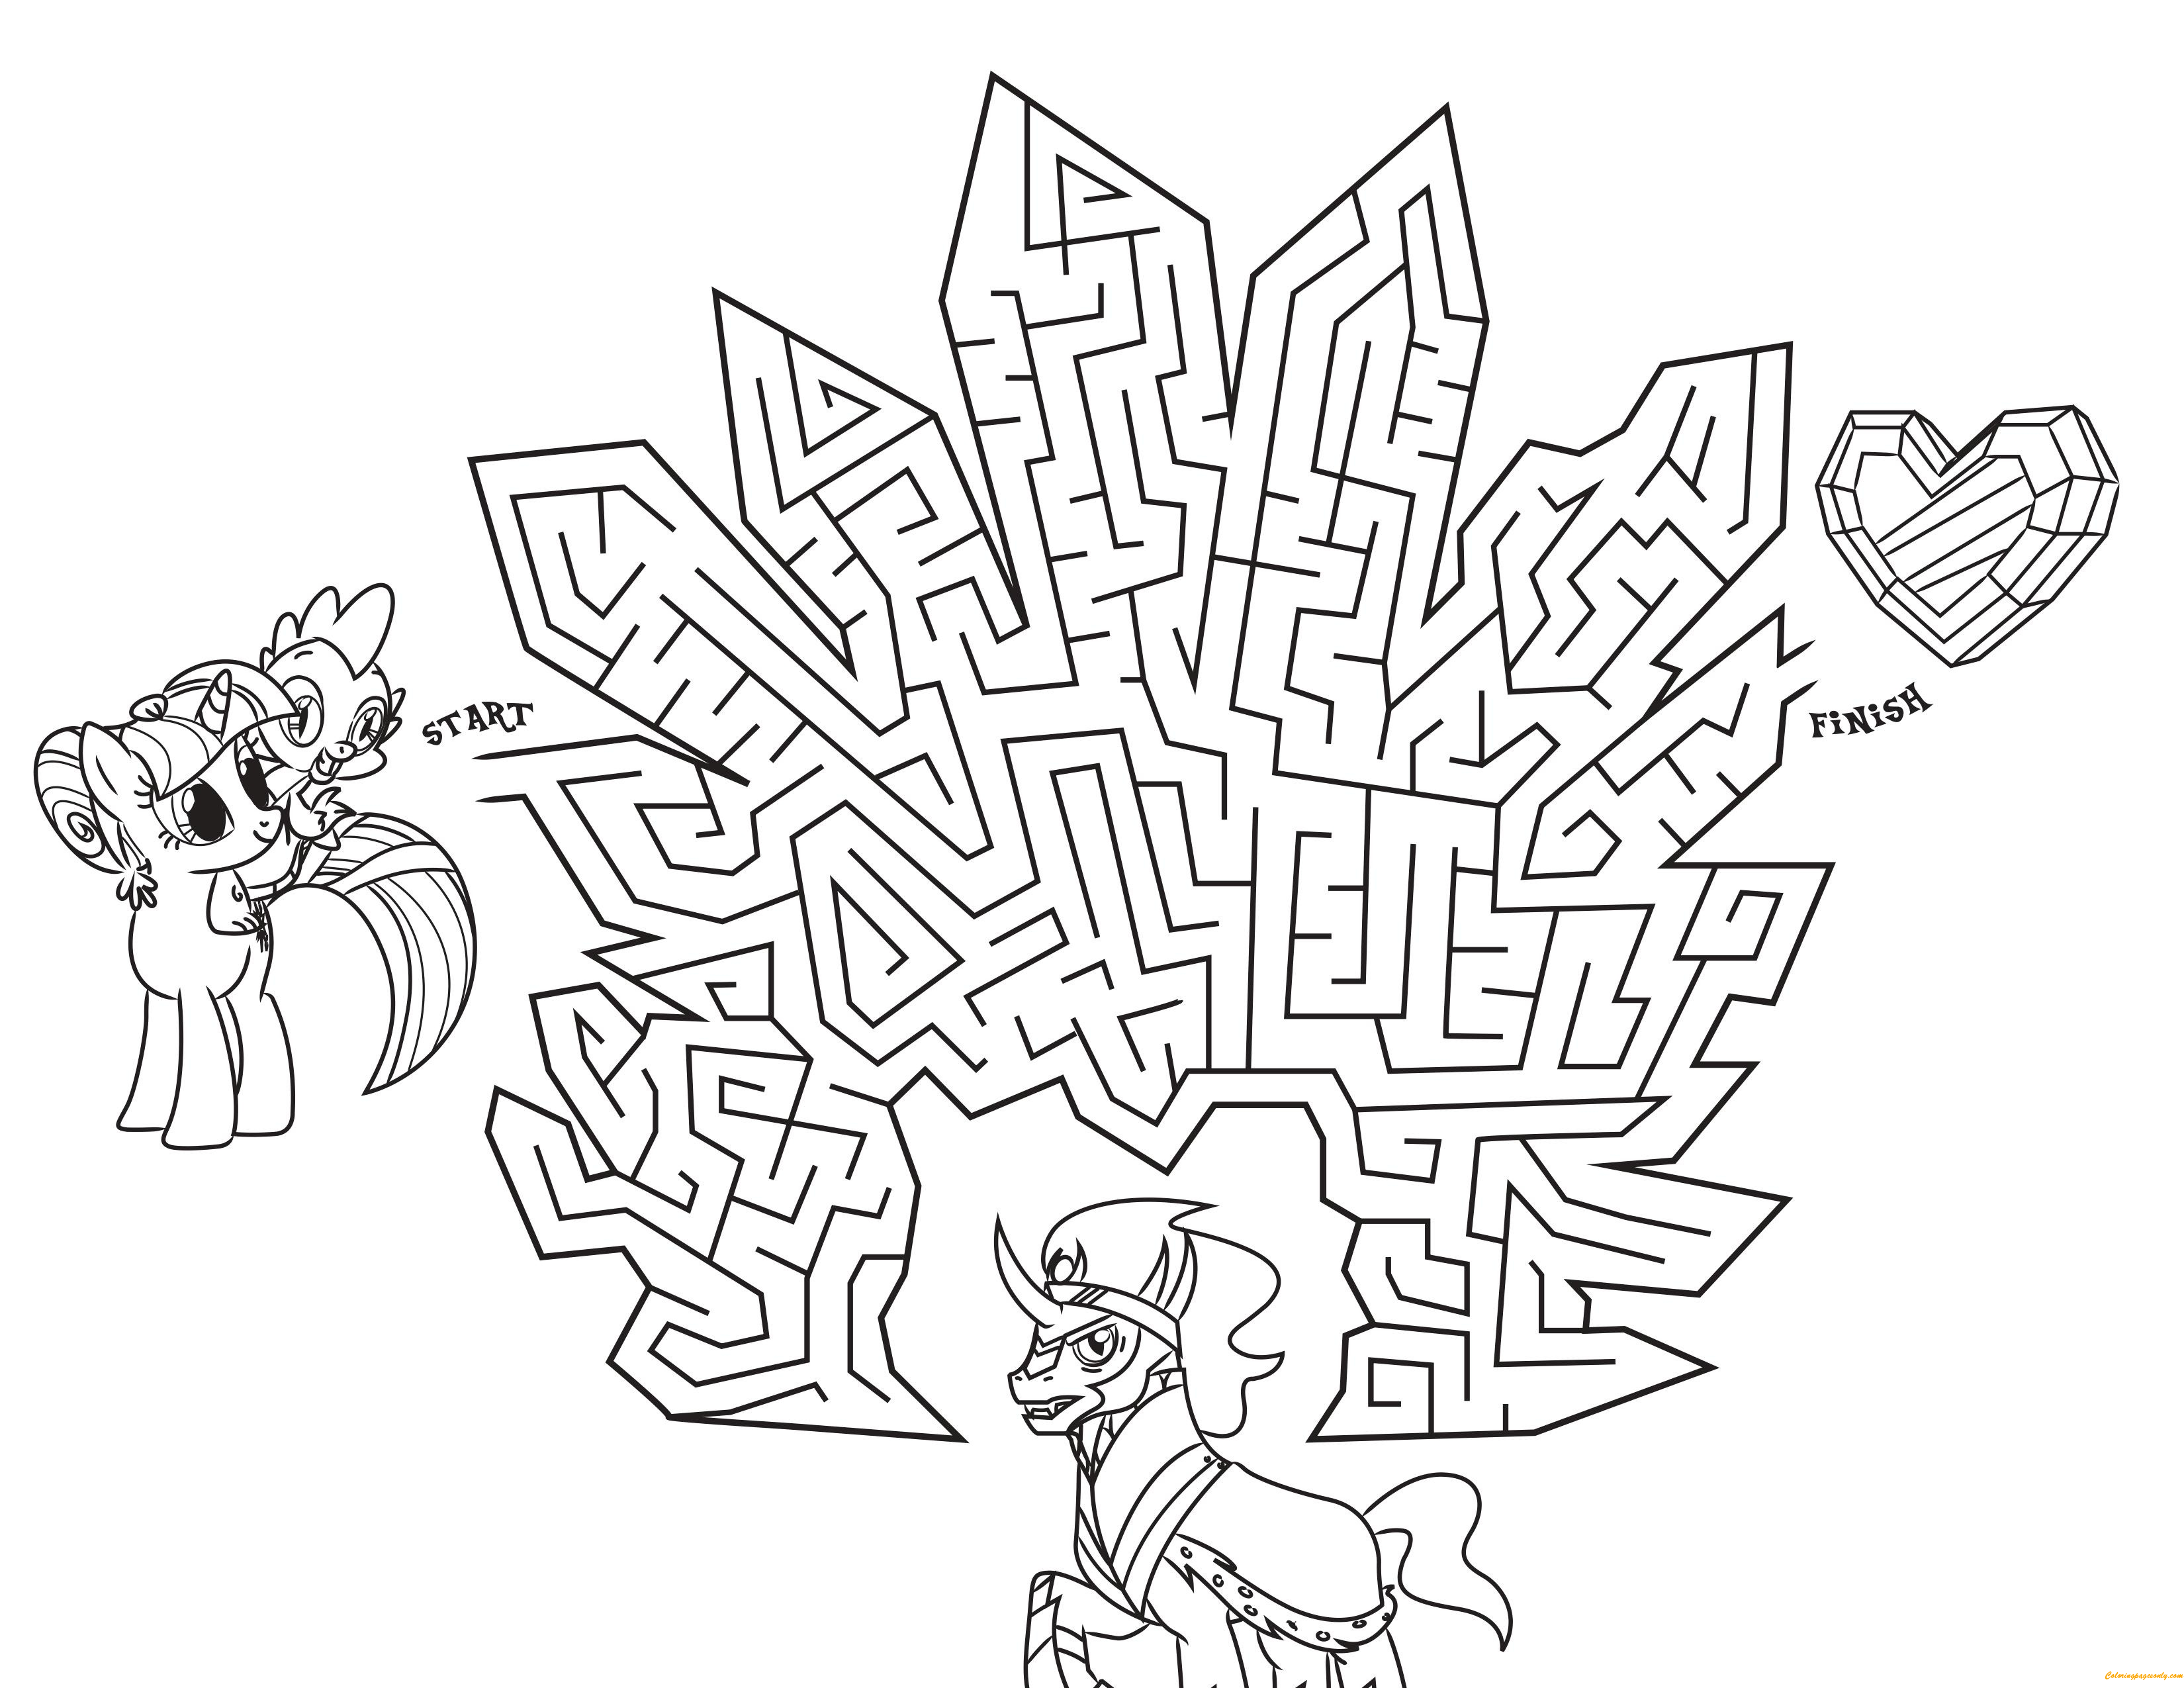 My Little Pony Coloring Pages Crystal Empire : My little pony in crystal empire maze coloring page free